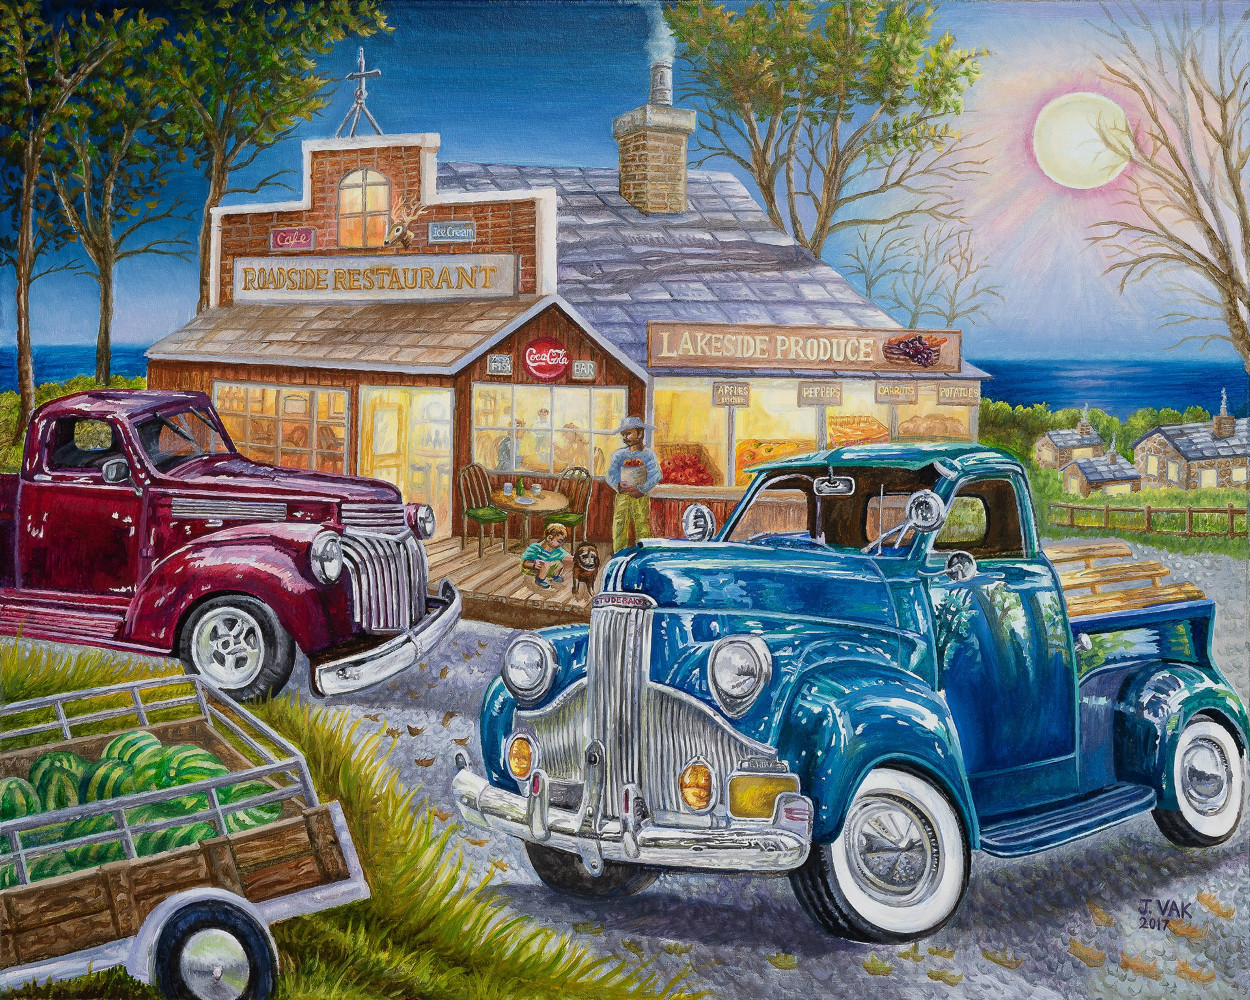 Classic Studebaker and 40s Chevy Pickup Truck                       24 X 30 Original Oil                                $2500                                 2018